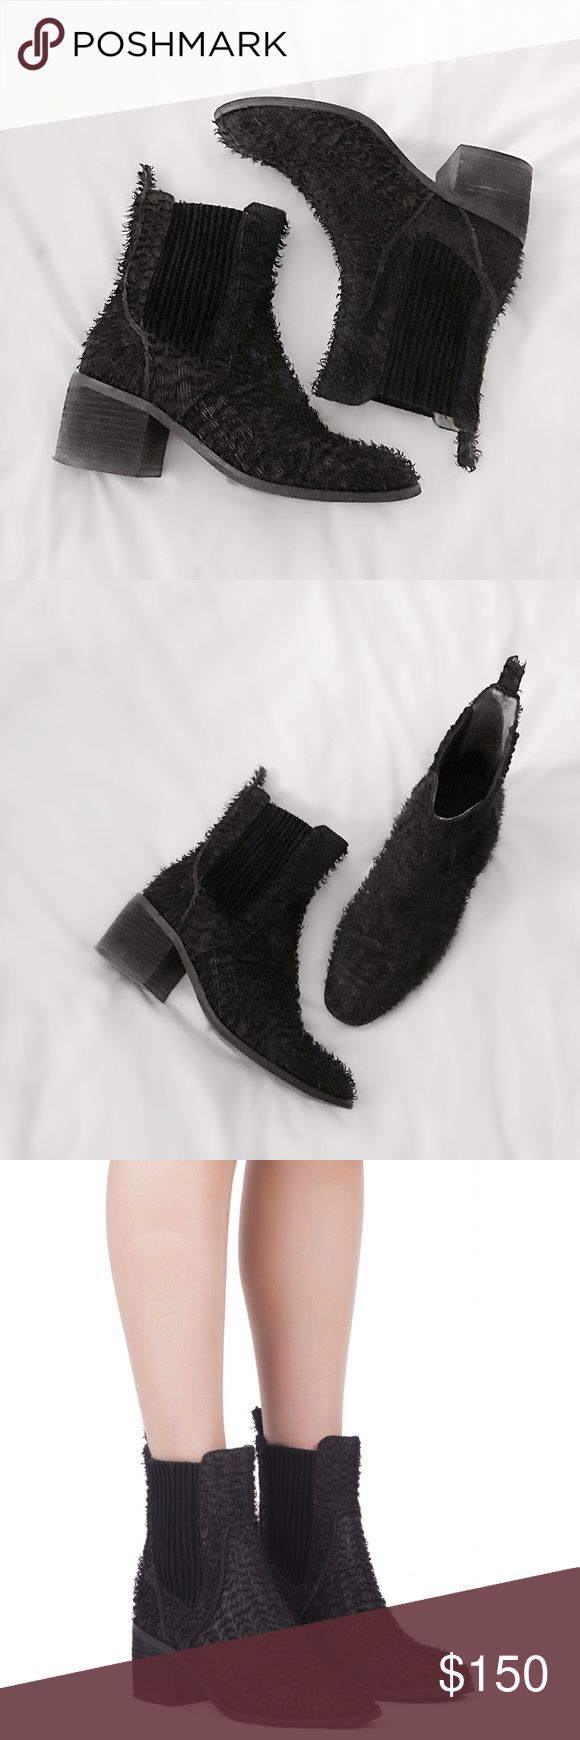 """JC Fuzzy Chelsea Leather Boot Black leather chelsea boot by Jeffrey Campbell with an amazing fuzzy textured leather exterior. Matte black leather, leather lining and synthetic sole. Low 1.5"""" block heel for comfort, padded insole. Worn just a few times and in great condition with minimal wear. Size 8, fits true to size. Retail $220 at Nasty Gal. Nasty Gal Shoes Ankle Boots & Booties"""